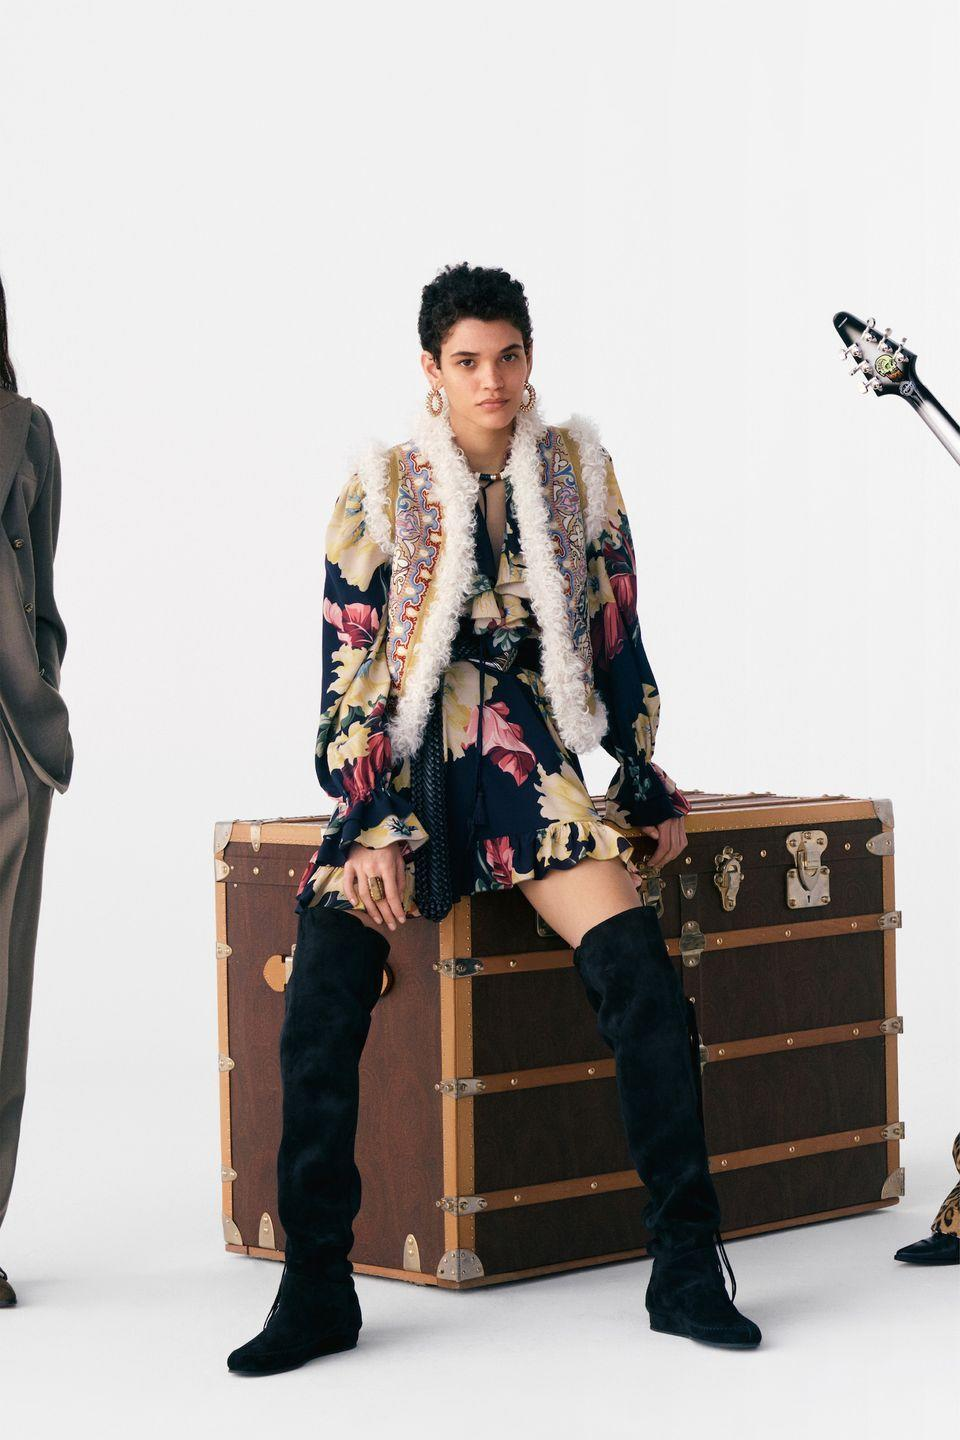 <p>Bohemia is a characteristic that is embedded in the Etro's DNA. The Italian label's pre-fall 2021 collection, however, was far more rhapsodic. From the shearling-lined vests to to the '70s-style, animal-print suits, the entire lineup is the stuff of rock legends. </p>